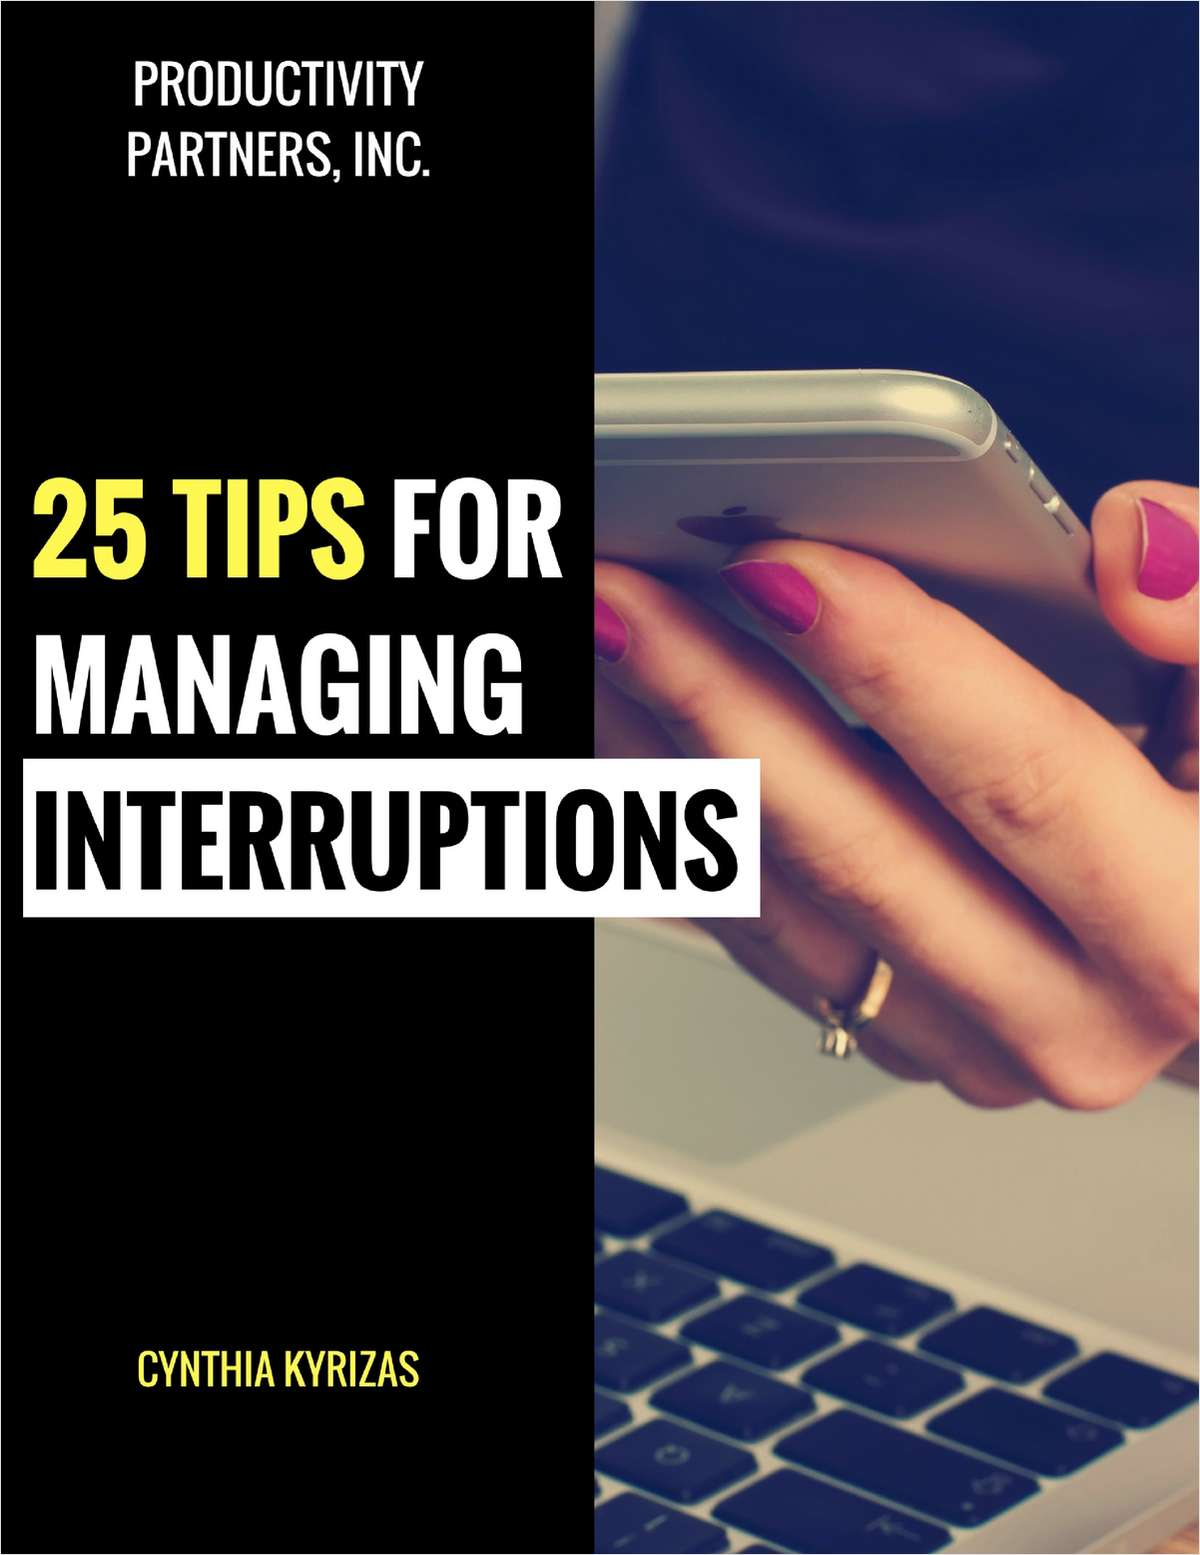 25 Tips for Managing Interruptions